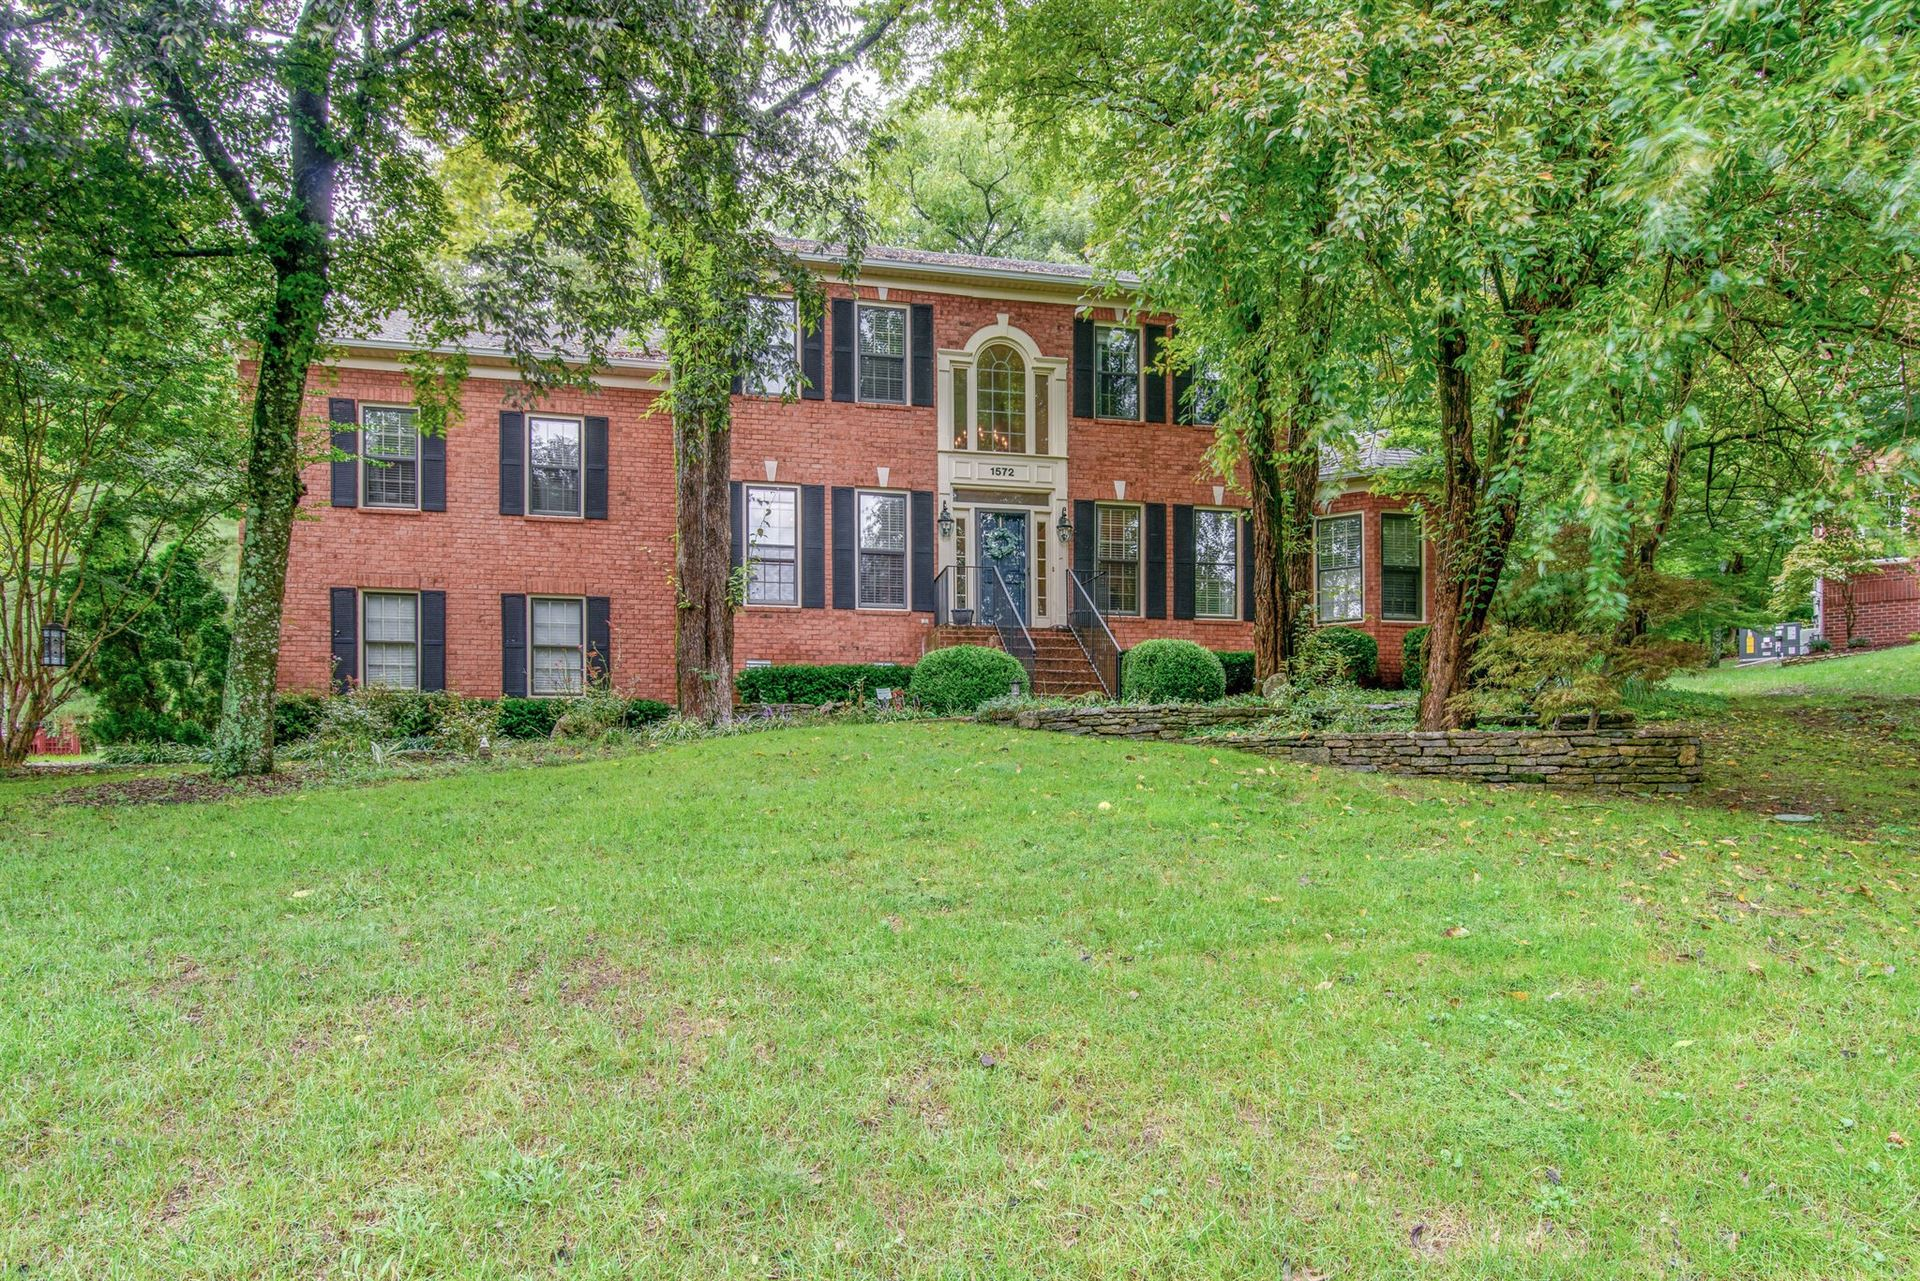 Photo of 1572 Woodberry Ct, Brentwood, TN 37027 (MLS # 2293102)